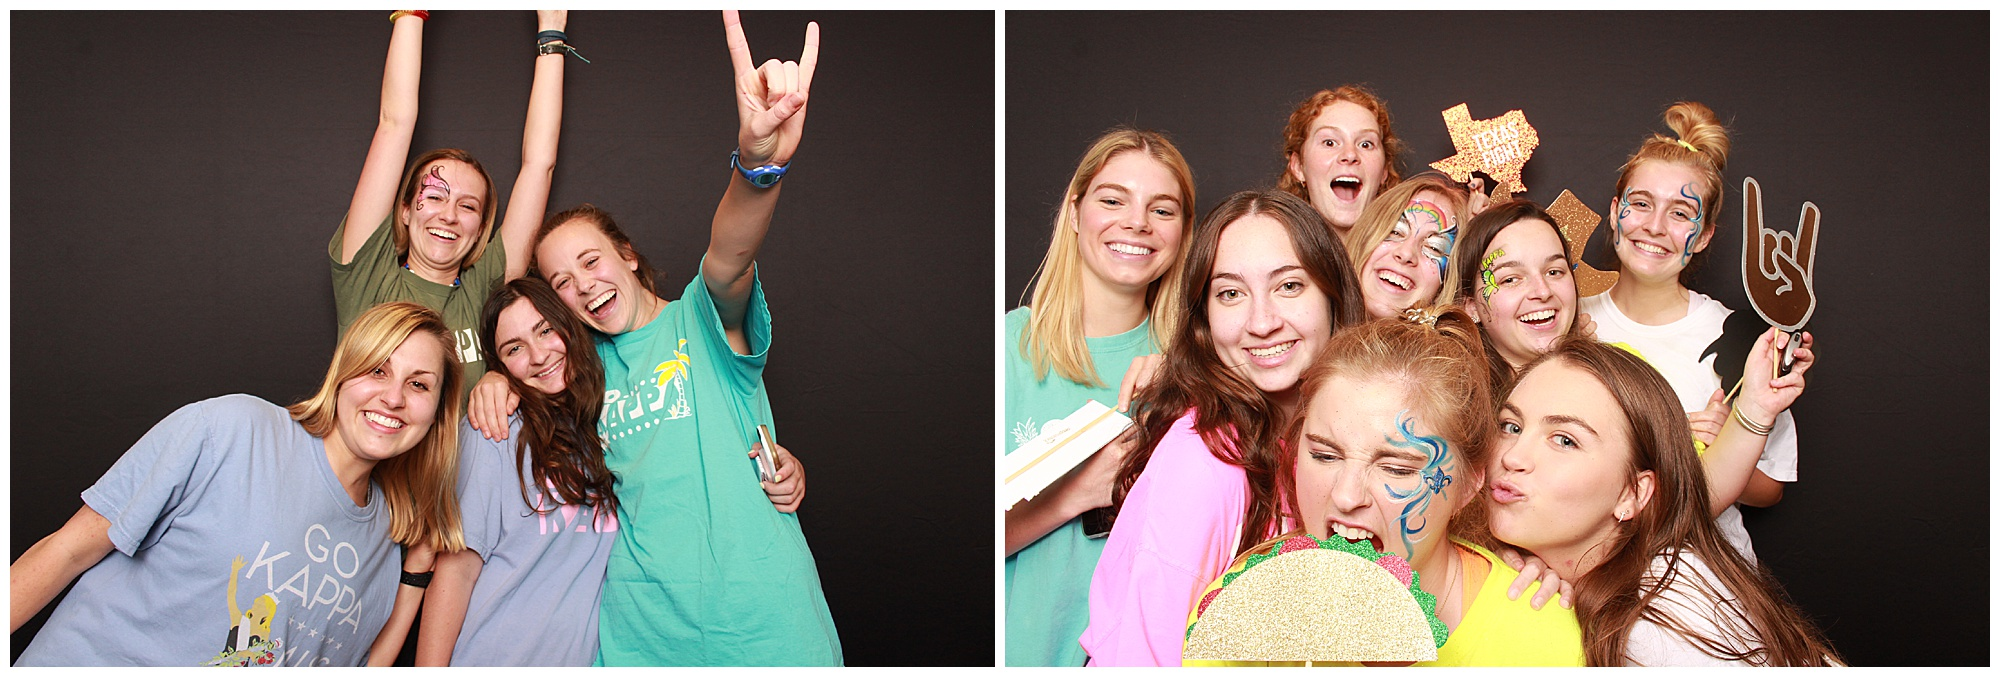 austin party photo booth